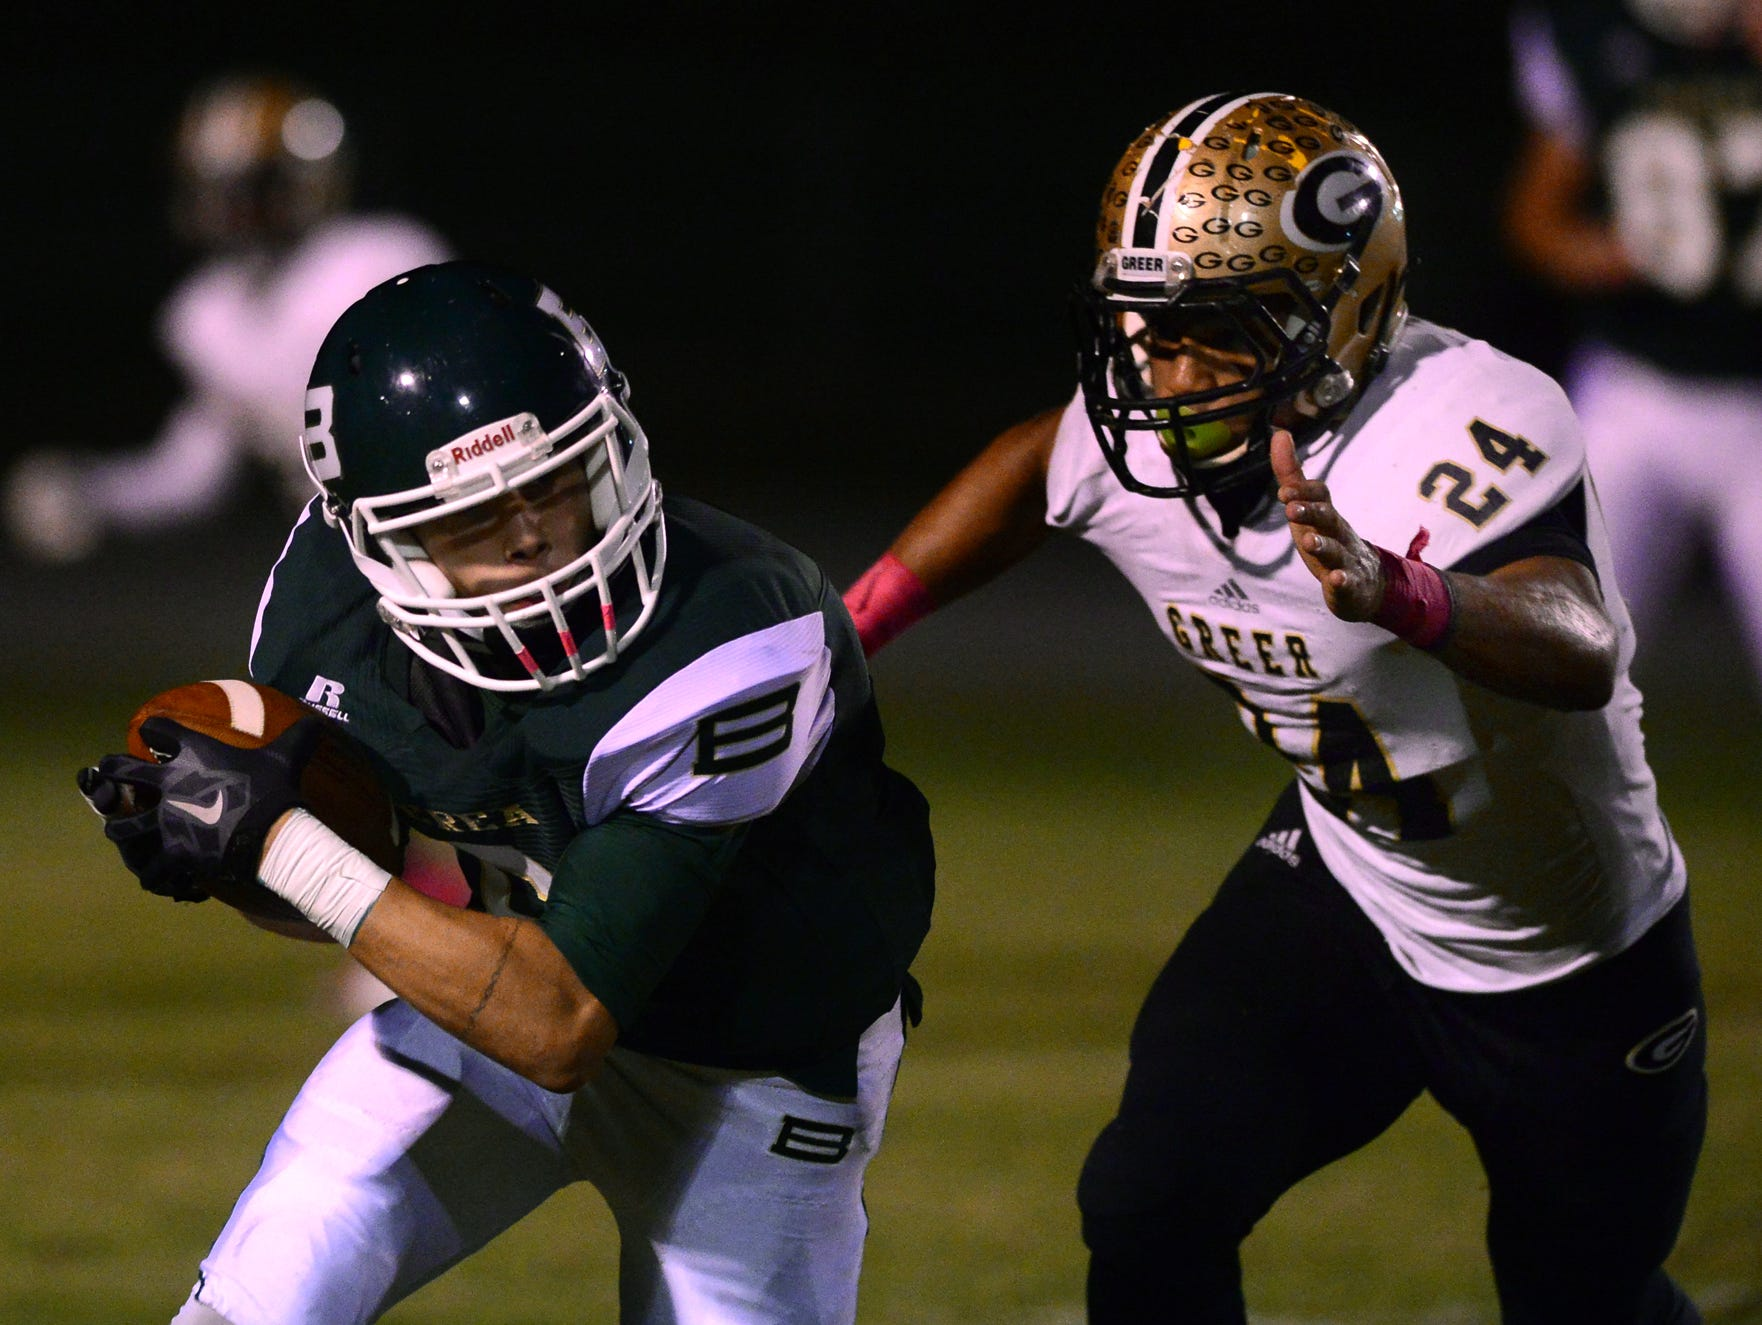 Greer High's Adrian McGee (24) tackles Berea's Tyler Landrum (6) at Berea on Friday, October 9, 2015.